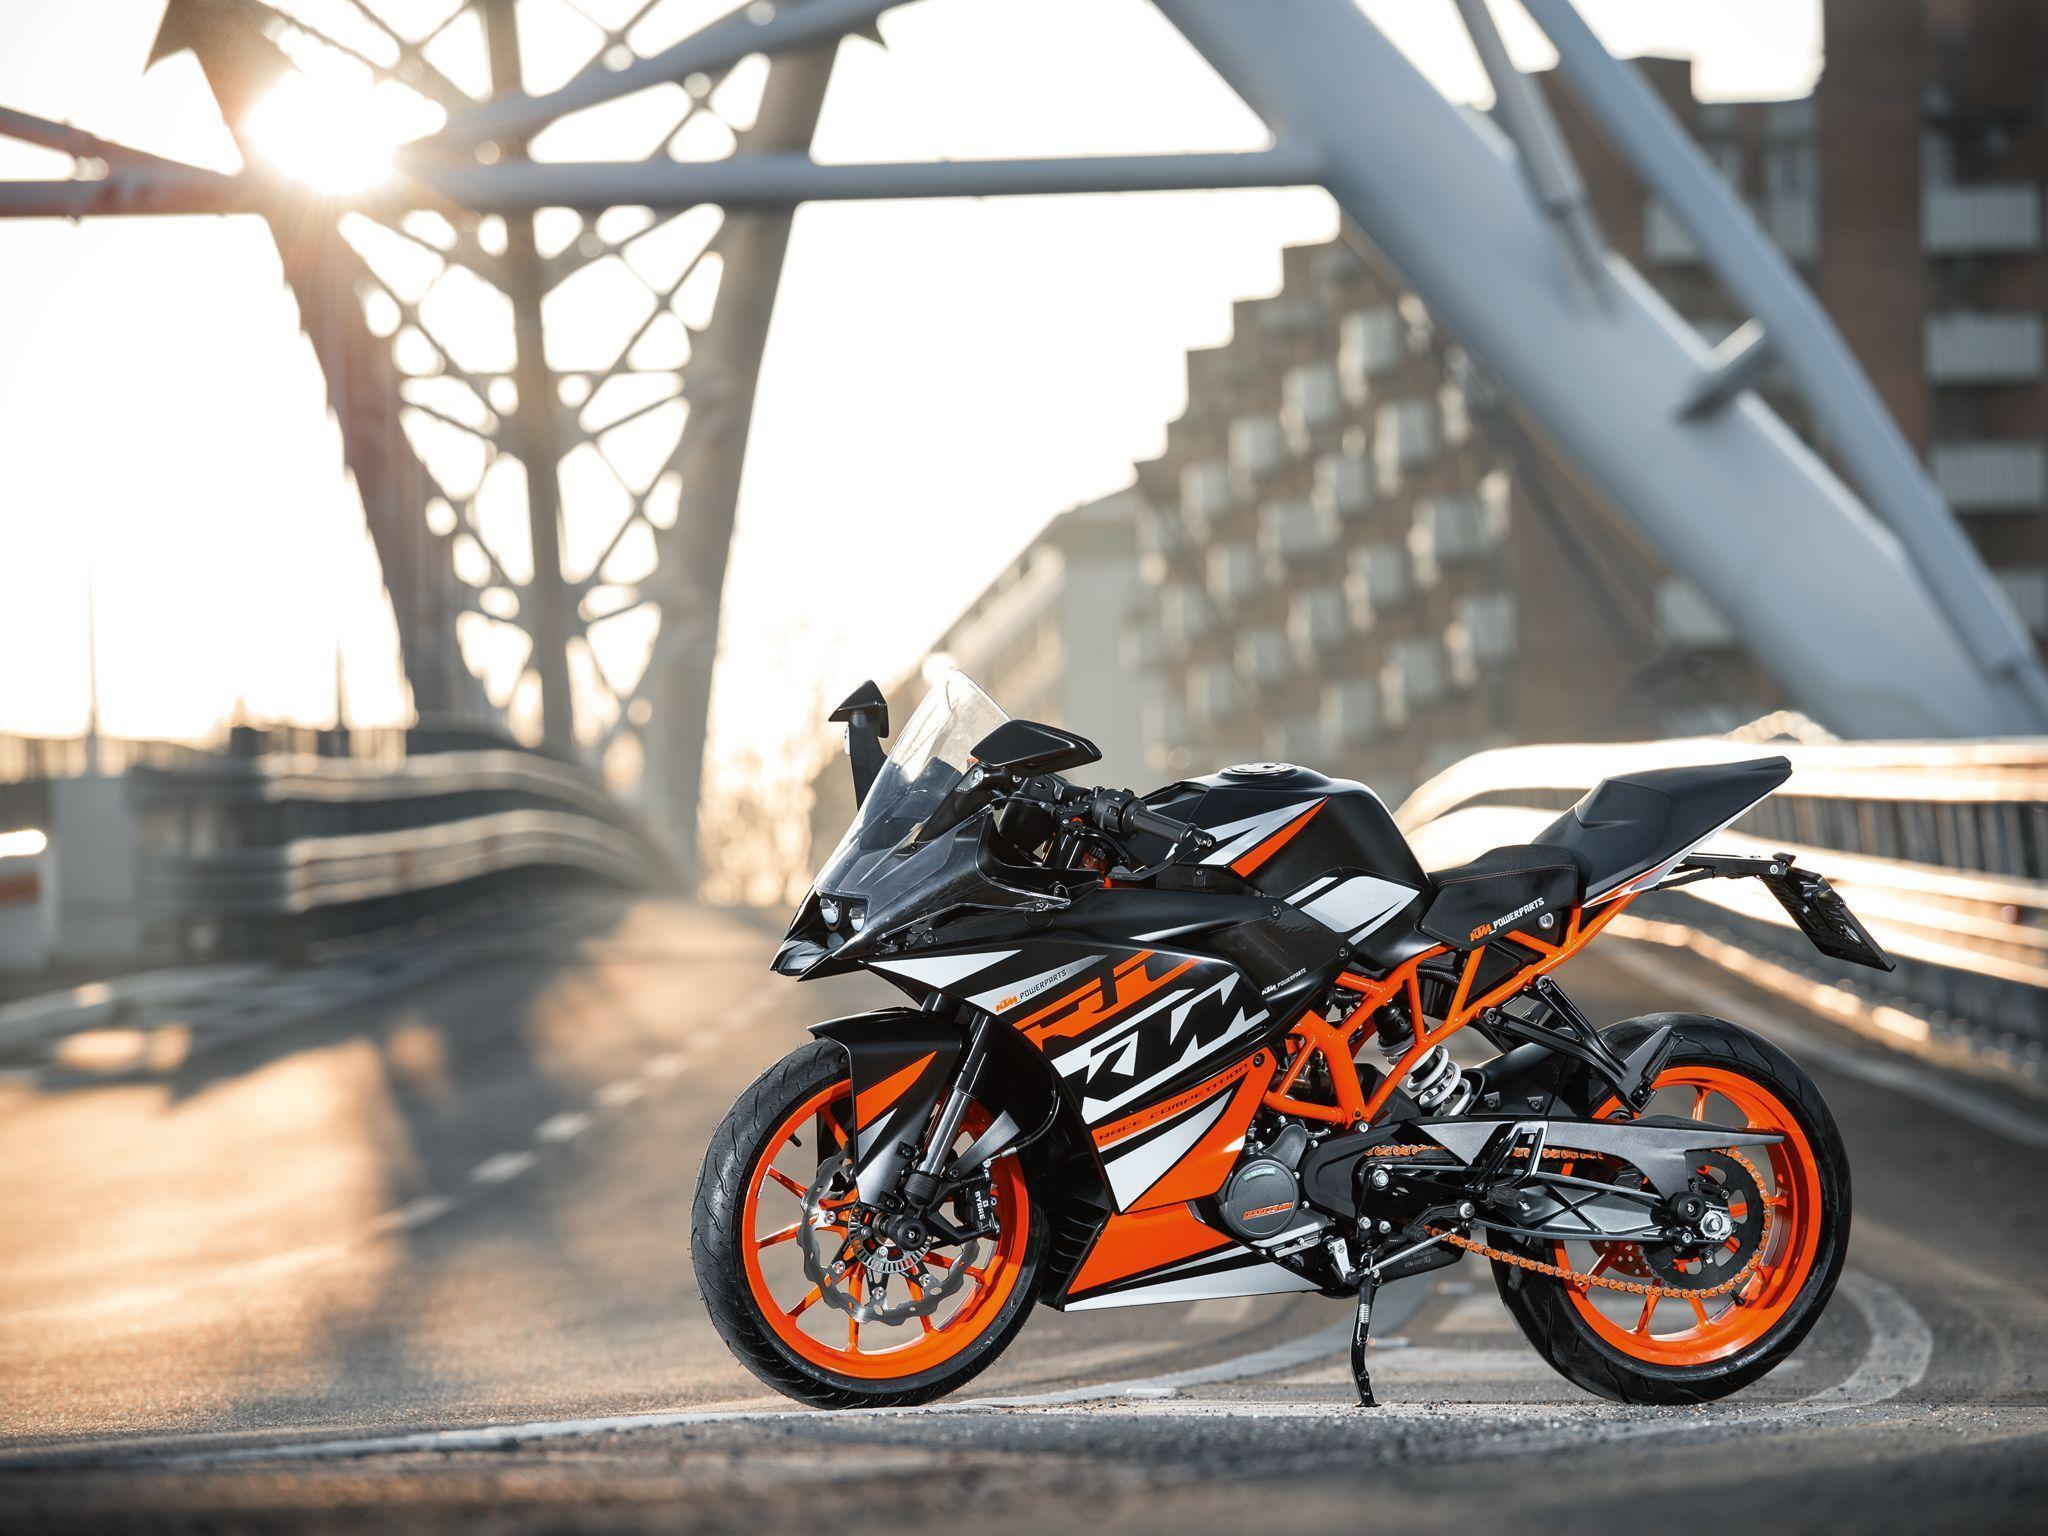 KTM RC 125 Deliveries Begin In India | Mowval Auto News